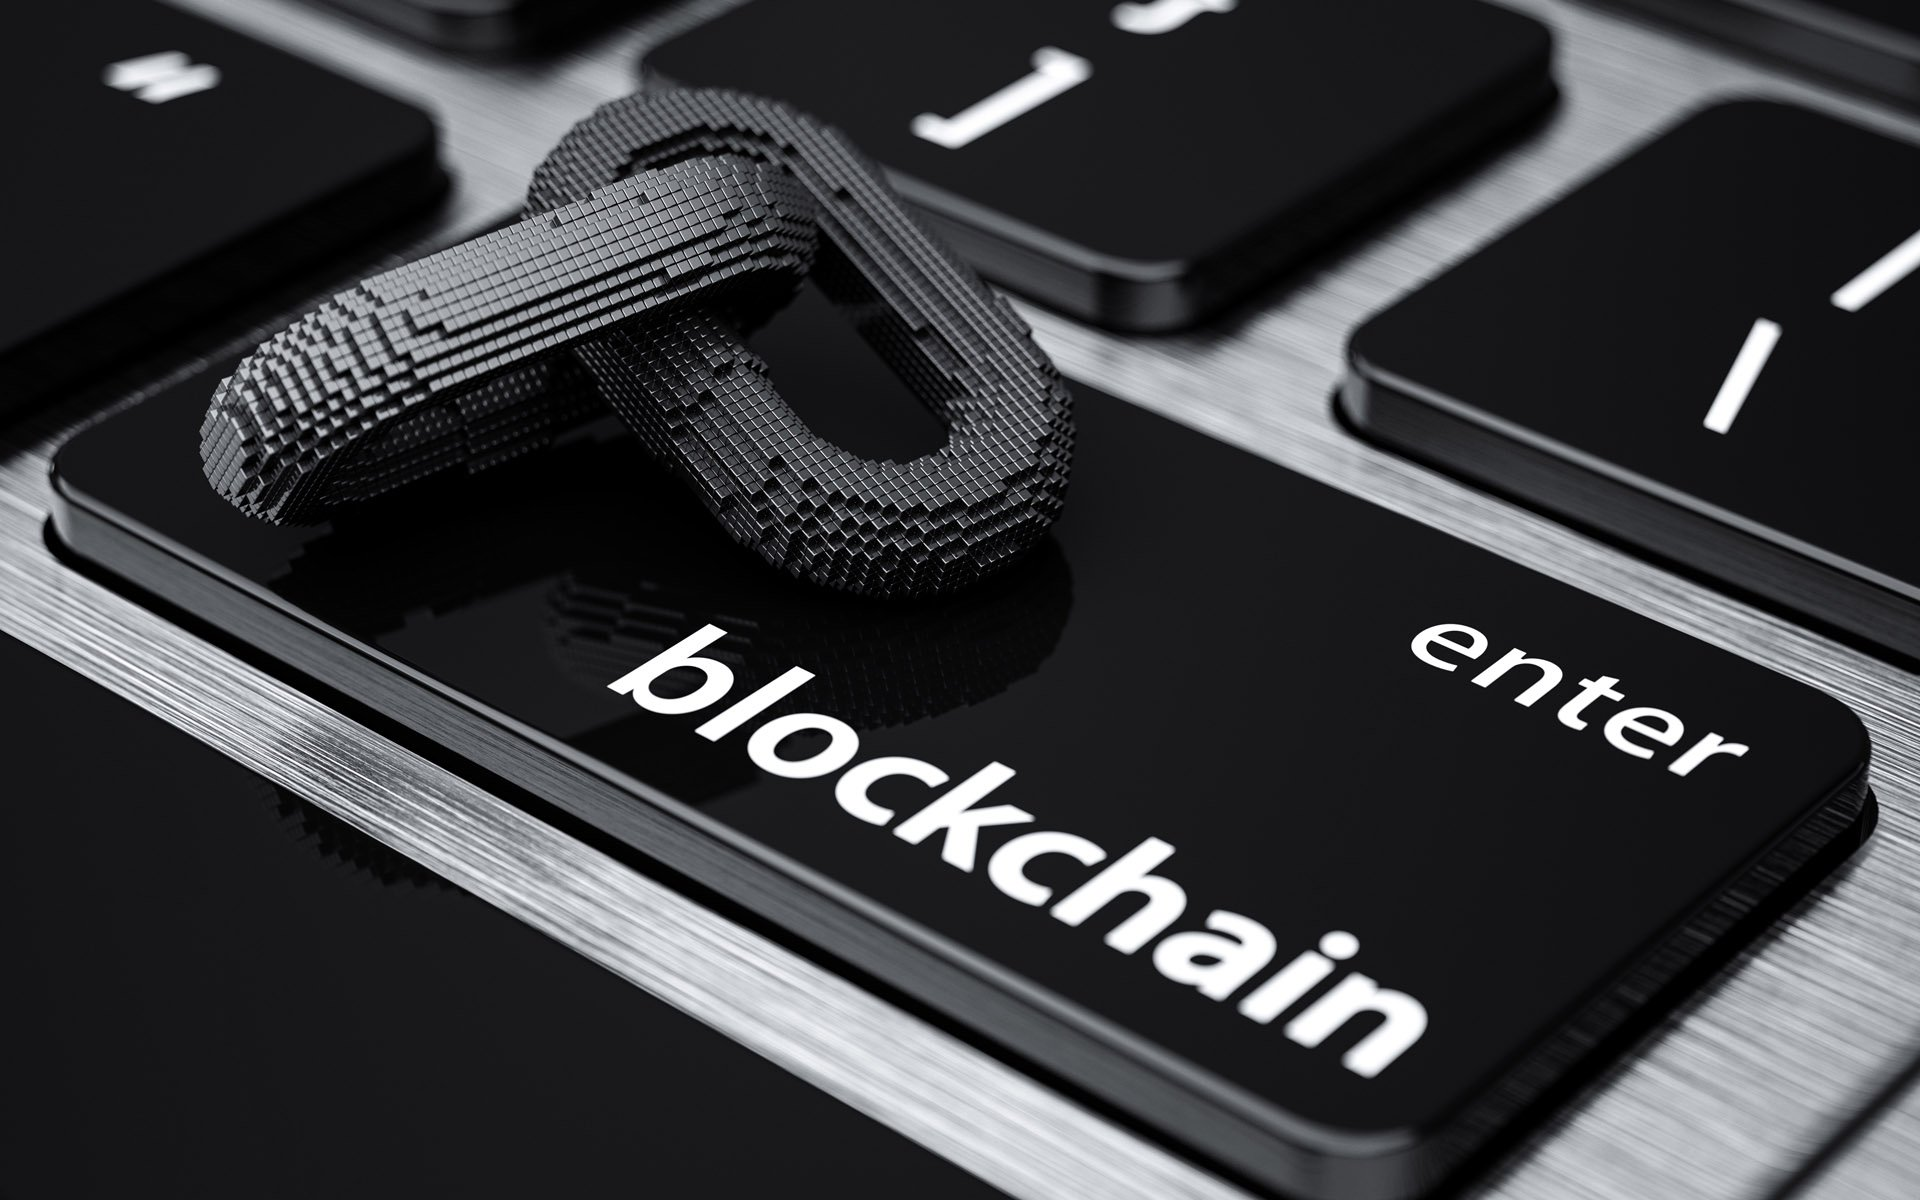 South Korea: Blockchain Law Society to Launch in Order to Develop Legal Framework